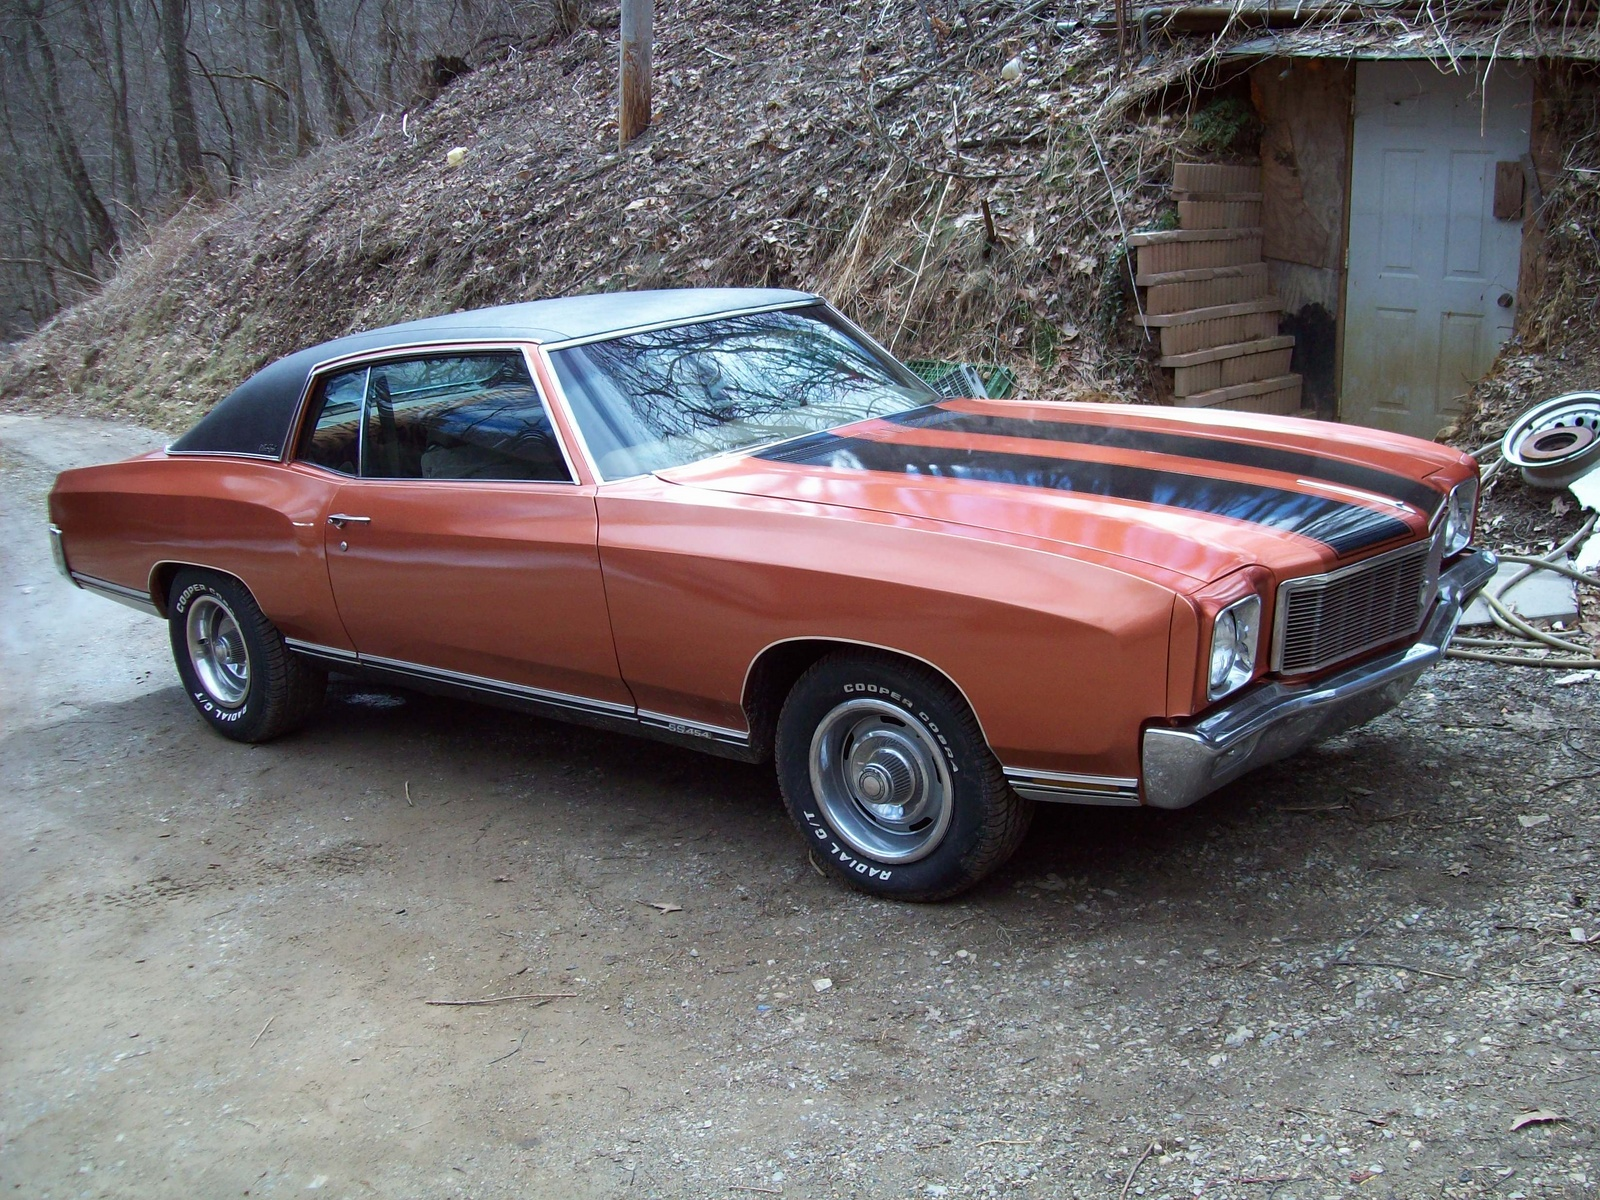 chevrolet monte carlo images #12